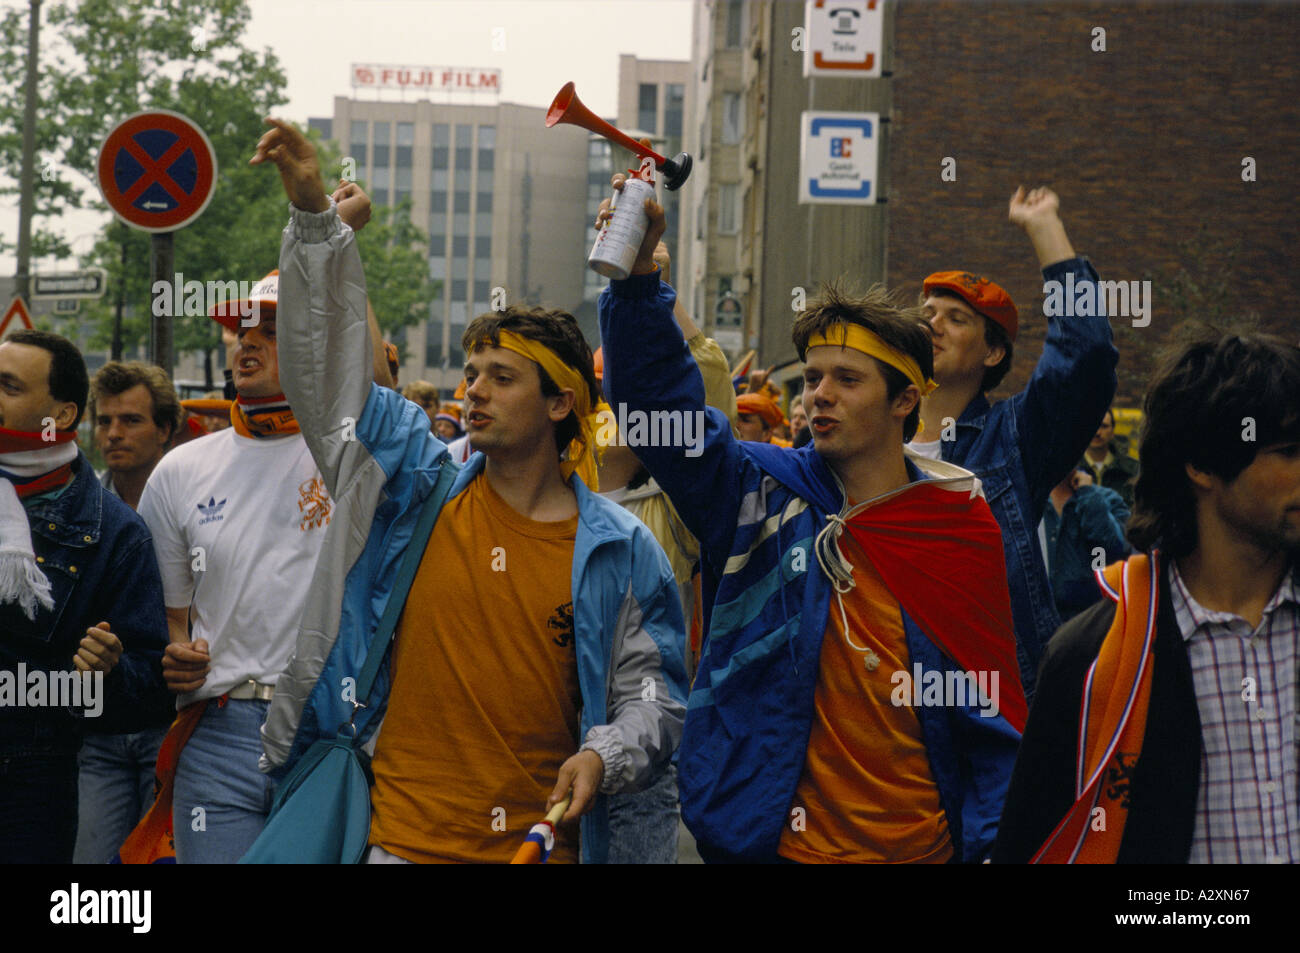 A Crowd Of Young Dutch Football Fans Cheering And Blowing Air Horns